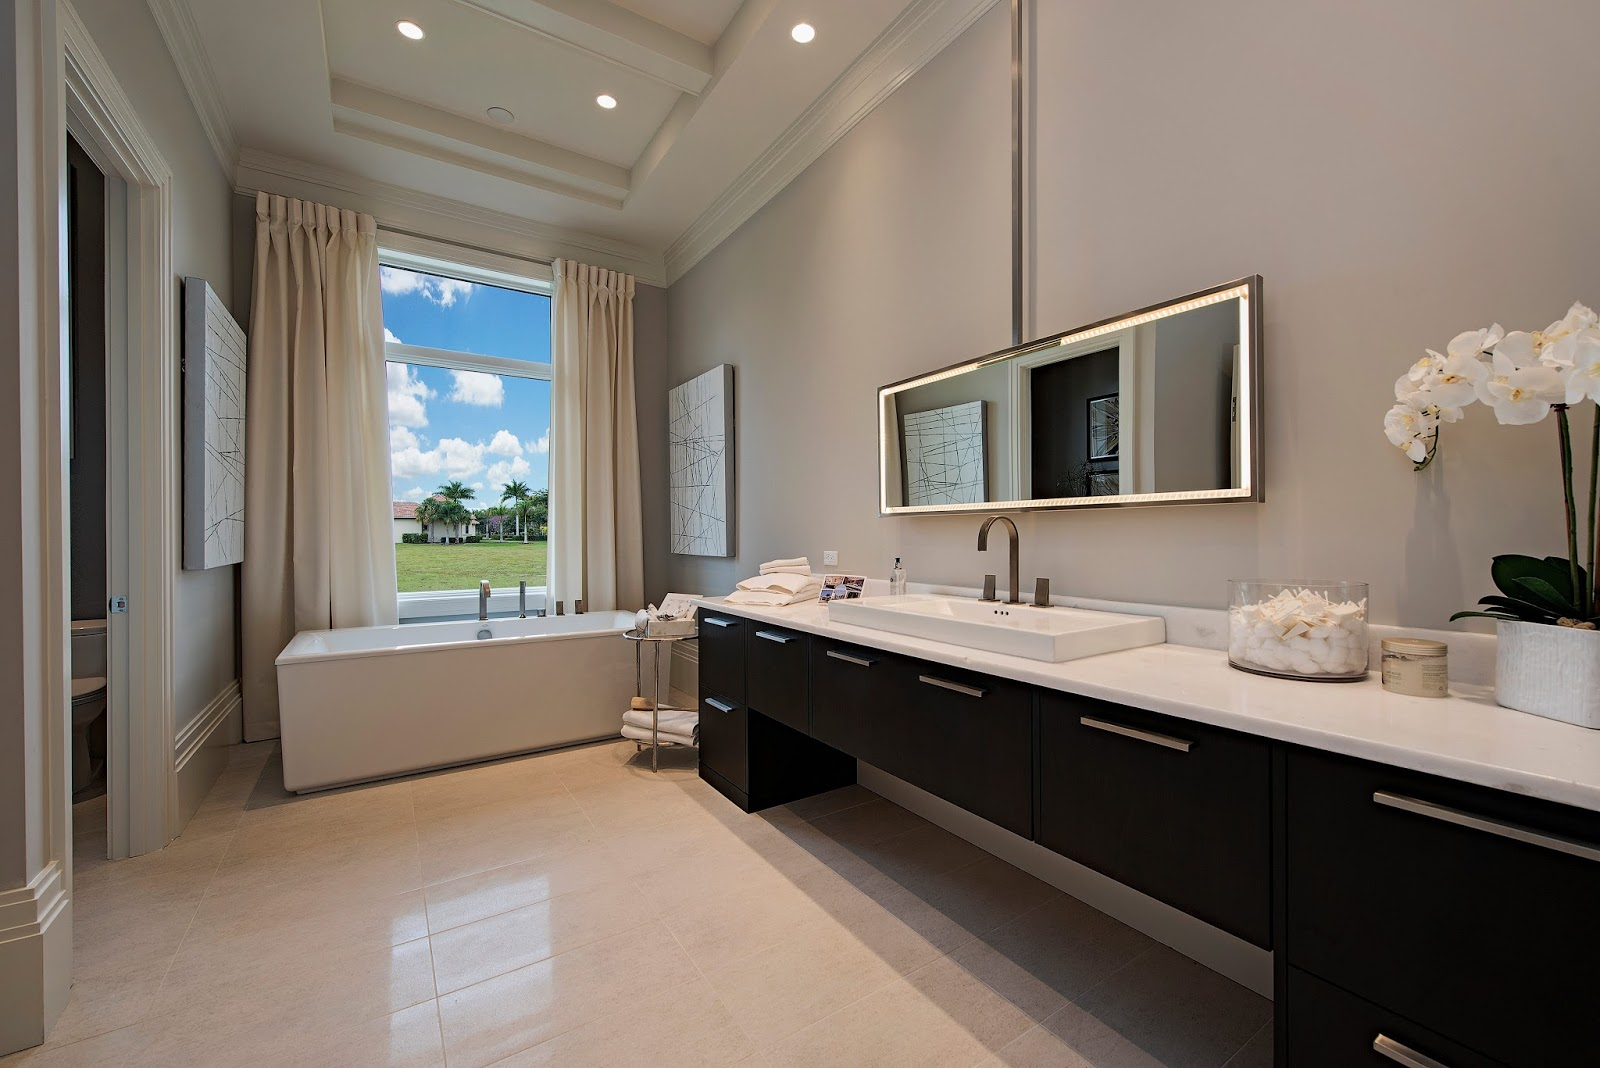 Superior Wood Products Custom Cabinetry Inspiring Style EDGE - Bathroom cabinets naples fl